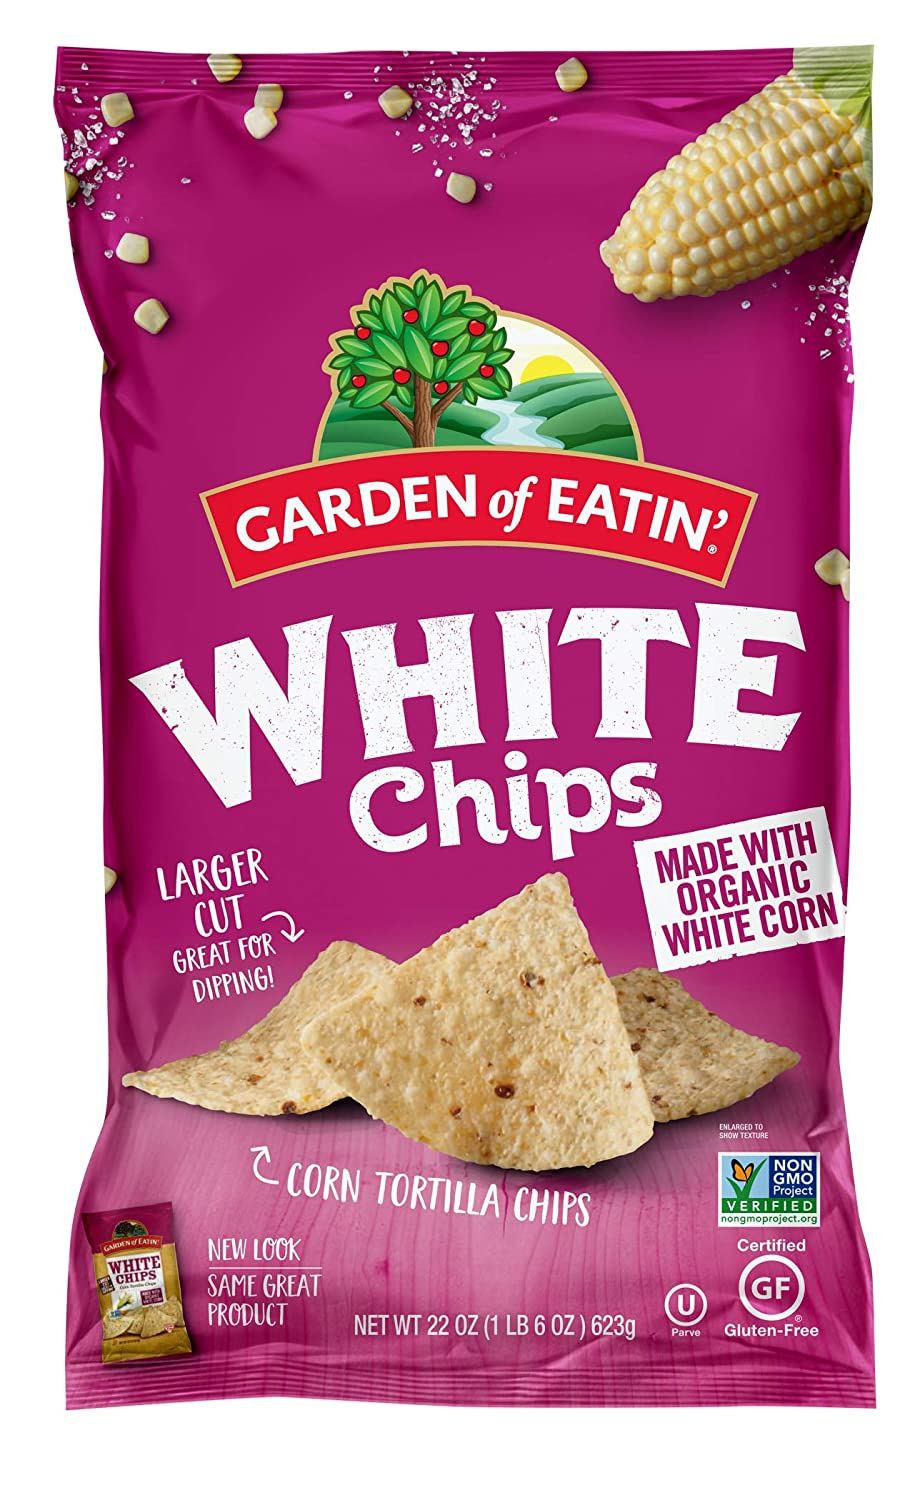 Garden of Eatin' Corn Tortilla Chips, White Chips, 22 Oz (Pack of 10) (Packaging May Vary)